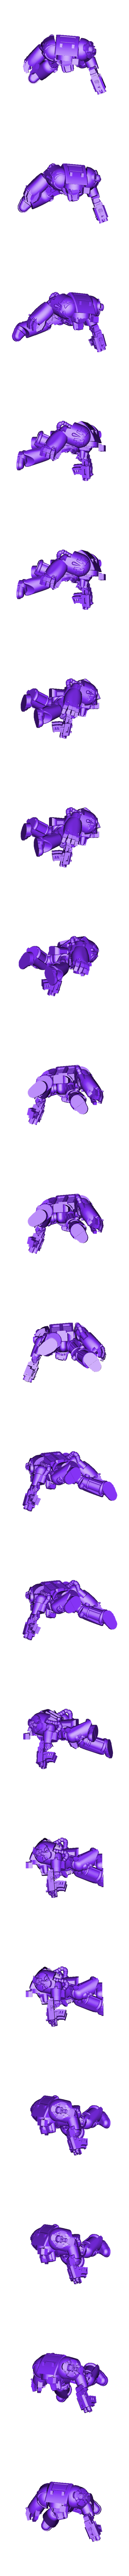 SpaceShipEnterTroop_3_PF_Open_SB_6.stl Download free STL file Bloody Heavily Armoured Space Soldiers • 3D print object, PhysUdo